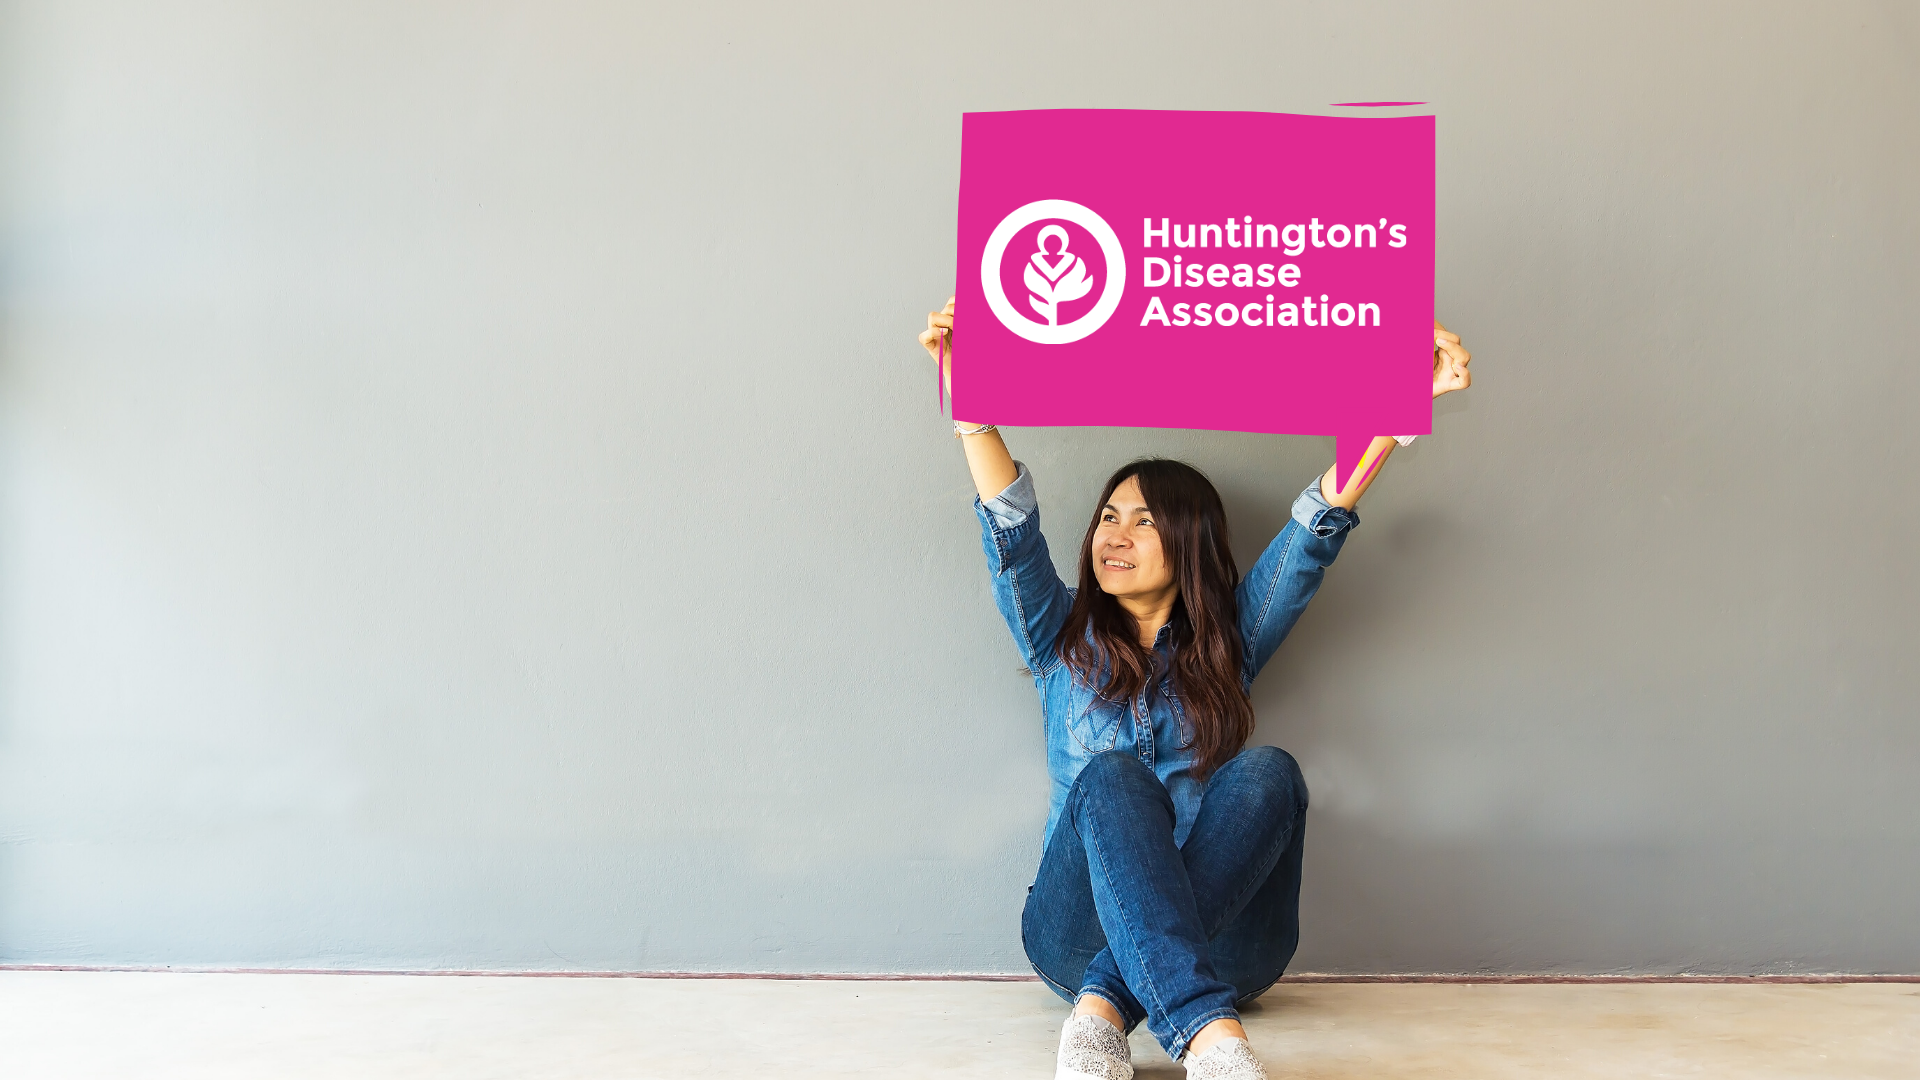 What do you think of the Huntington's Disease Association?